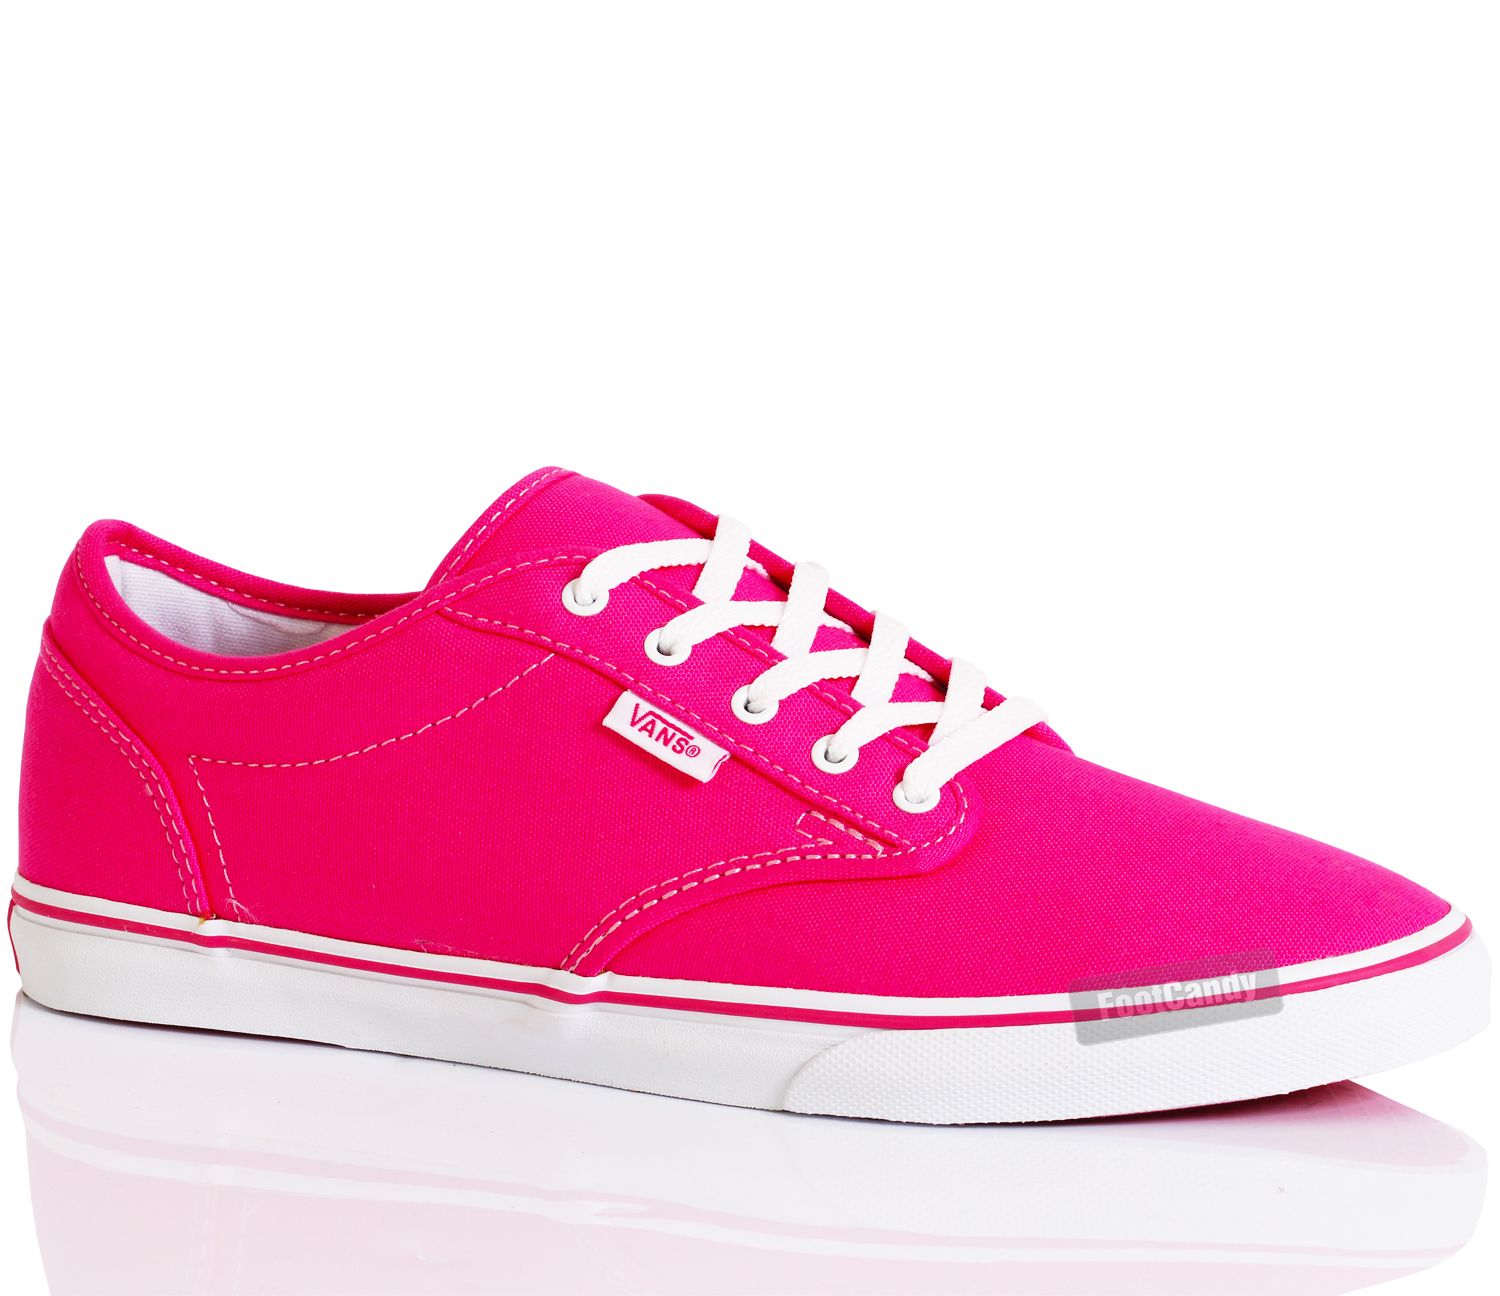 WOMENS-VANS-ATWOOD-LO-TOP-SKATE-SNEAKER-CANVAS-LACE-UP-TRAINERS-SHOES-SIZE